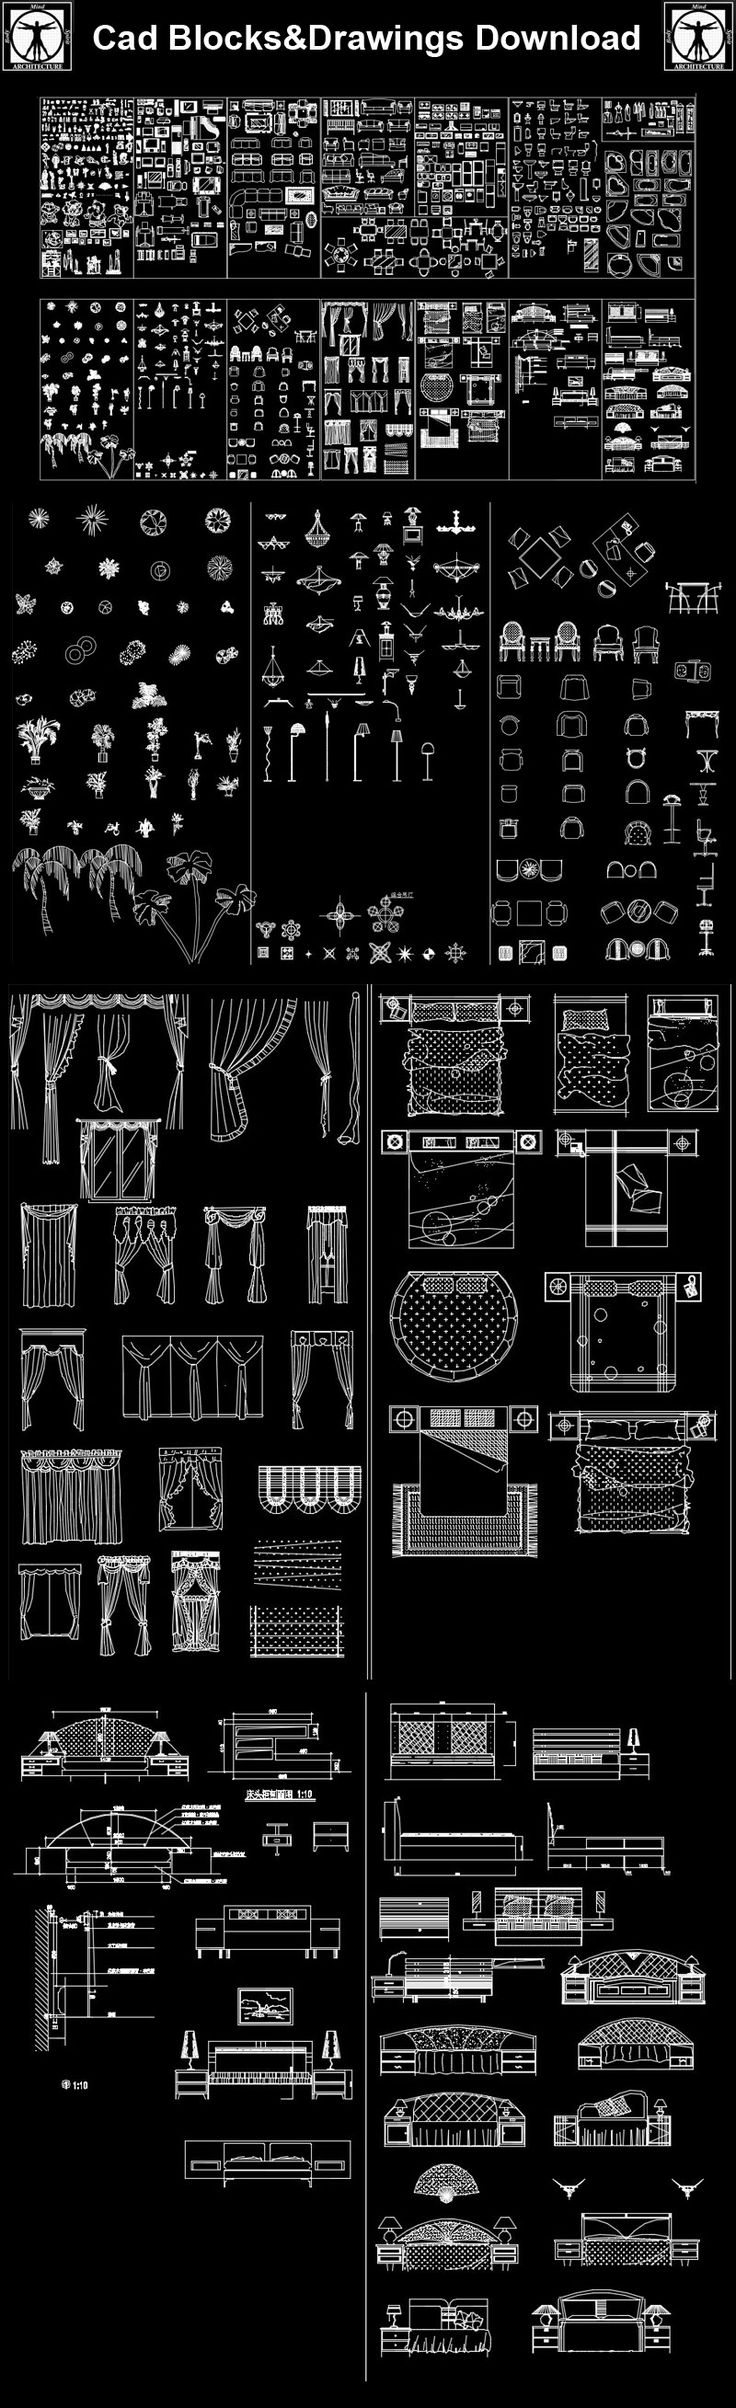 【Mix cad blocks bundle】 AutoCAD Blocks | AutoCAD Symbols | CAD Drawings | Architecture Details│Landscape Details   Full Cad blocks collection: Bathroom design, toilet design, bath design, office design, home design, sofa design, bedroom design, designer chairs, fire place design, kitchen design, kitchen sink design and interior lighting.